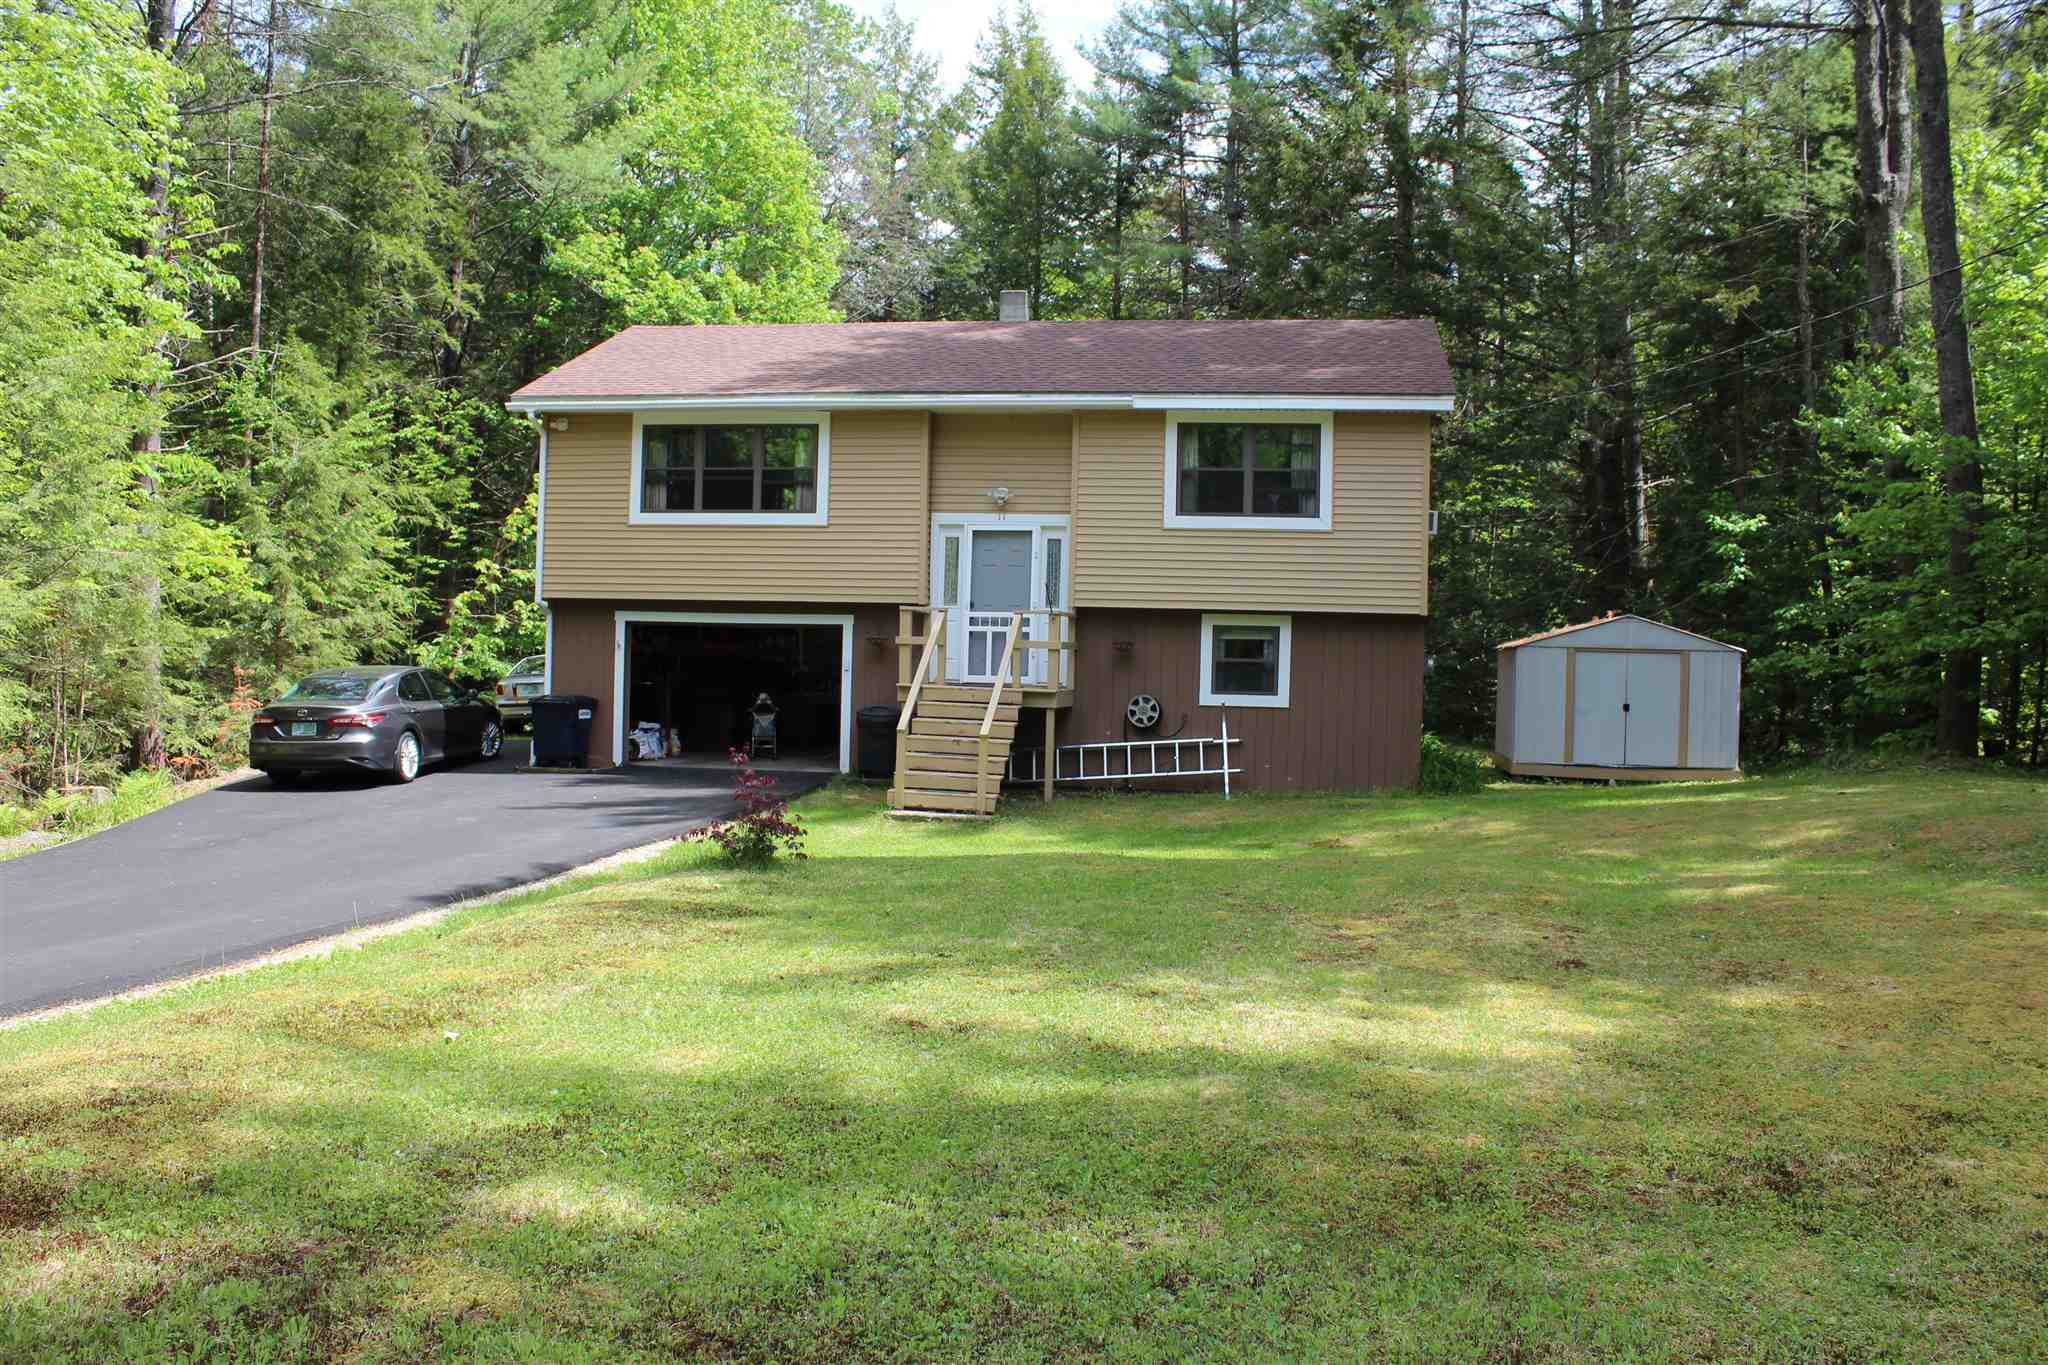 Newport NH 03773 Home for sale $List Price is $169,000